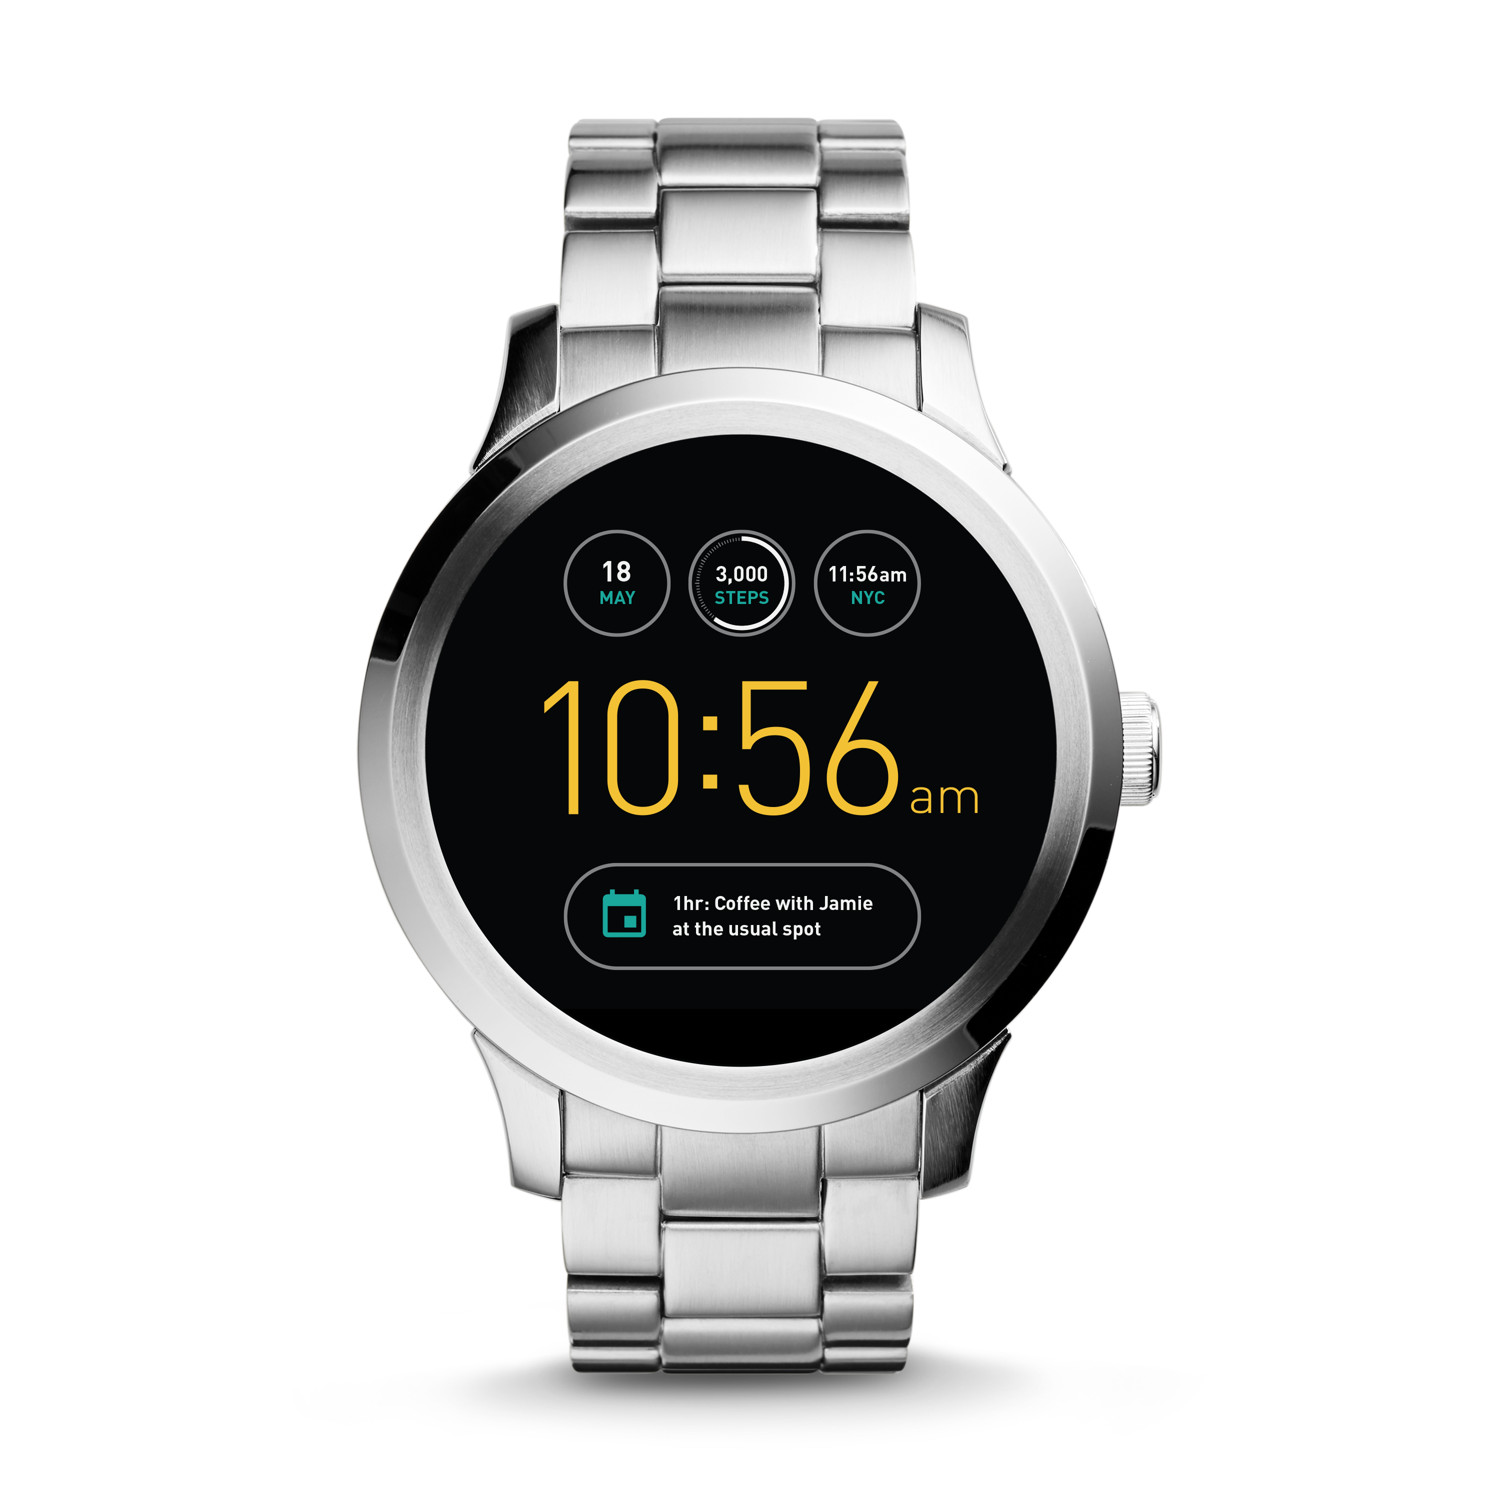 30970270853 Gen 1 Smartwatch - Q Founder Stainless Steel - Fossil